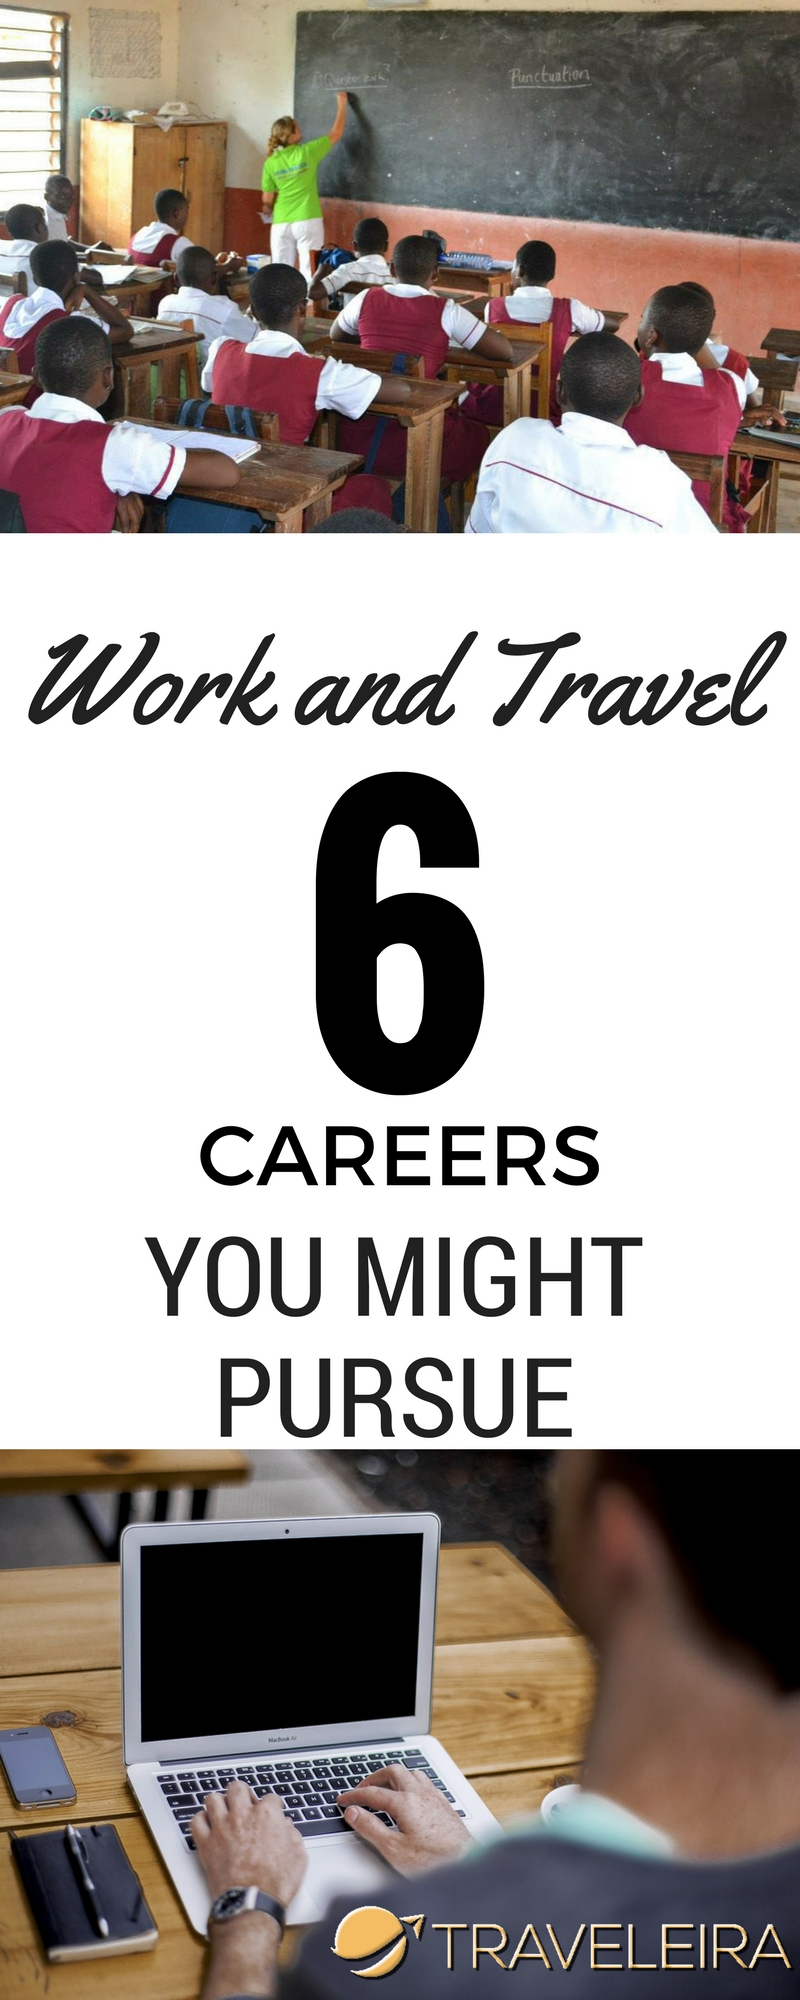 Work and Travel: 6 Careers You Might Pursue